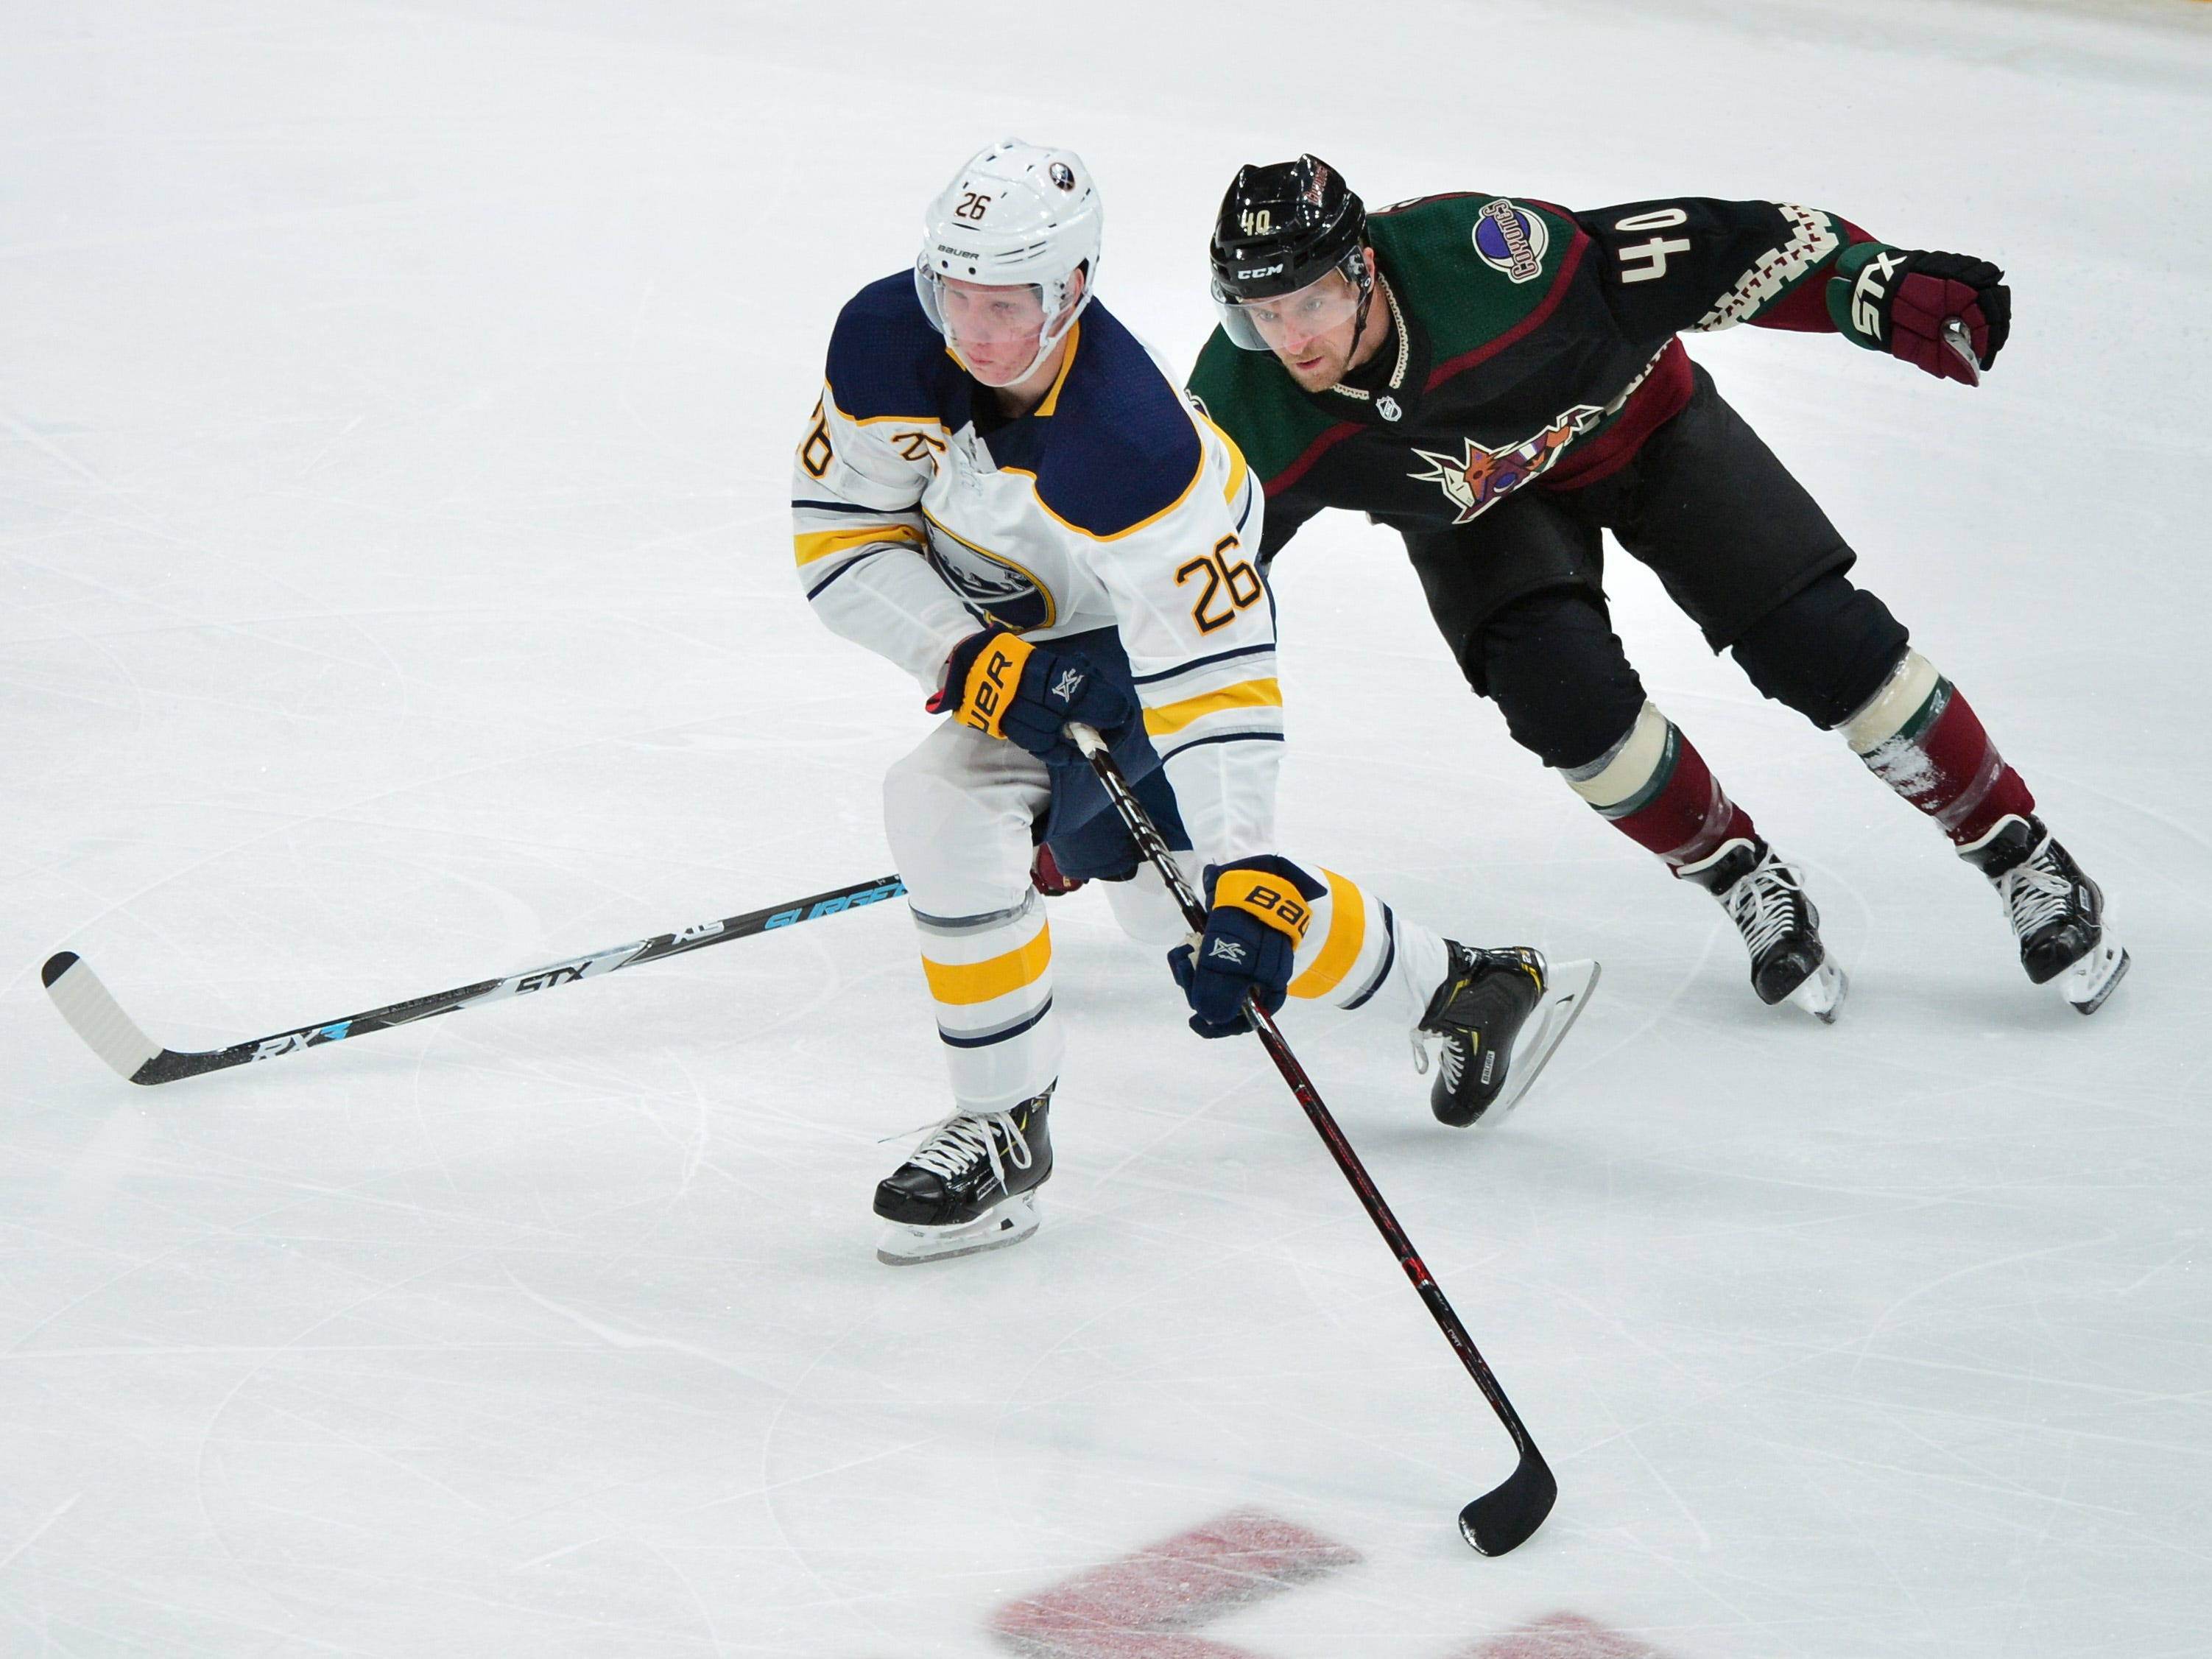 Oct 13, 2018; Glendale, AZ, USA; Buffalo Sabres defenseman Rasmus Dahlin (26) carries the puck past Arizona Coyotes right wing Michael Grabner (40) during the first period at Gila River Arena.